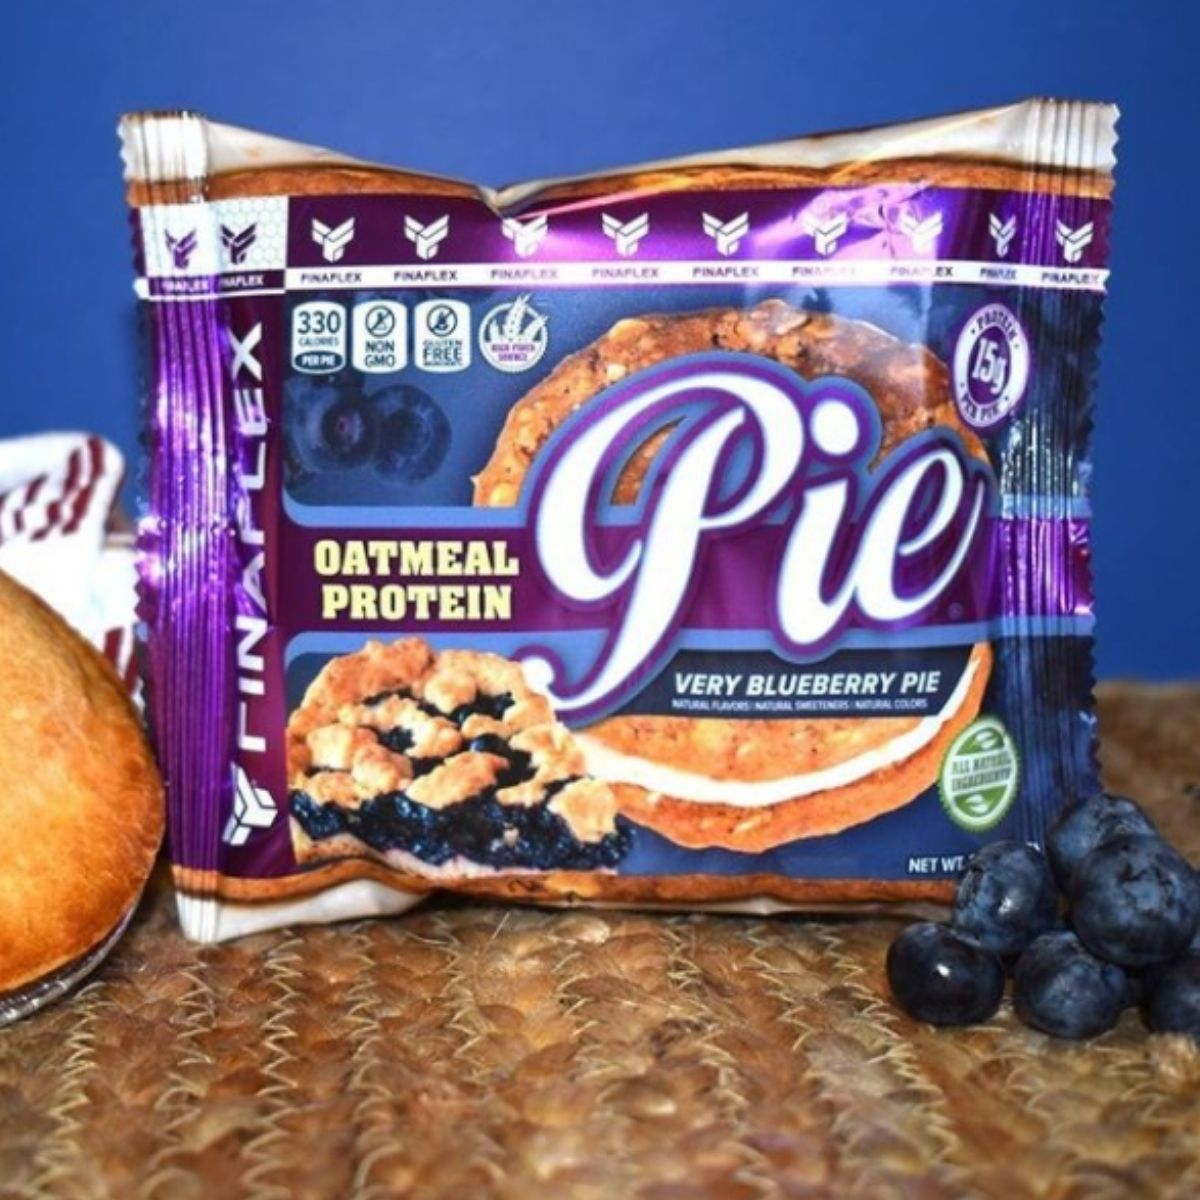 Finaflex Reveals a New Blueberry Flavored Oatmeal Protein Pie